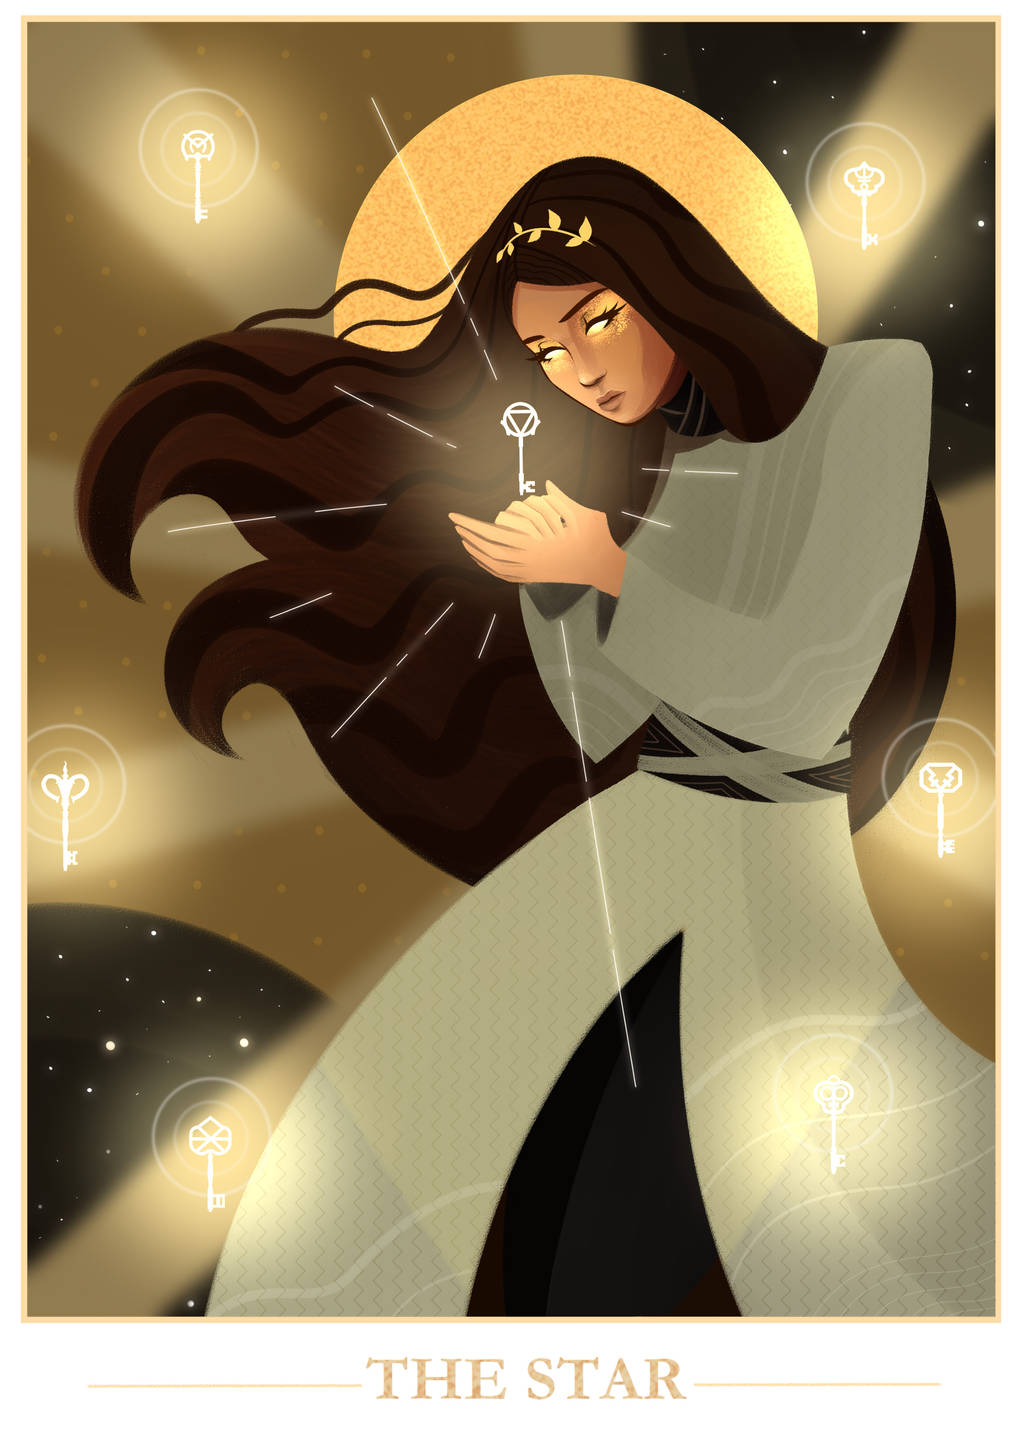 Julia's tarot card -The Star (Contest Entry) by coryph on